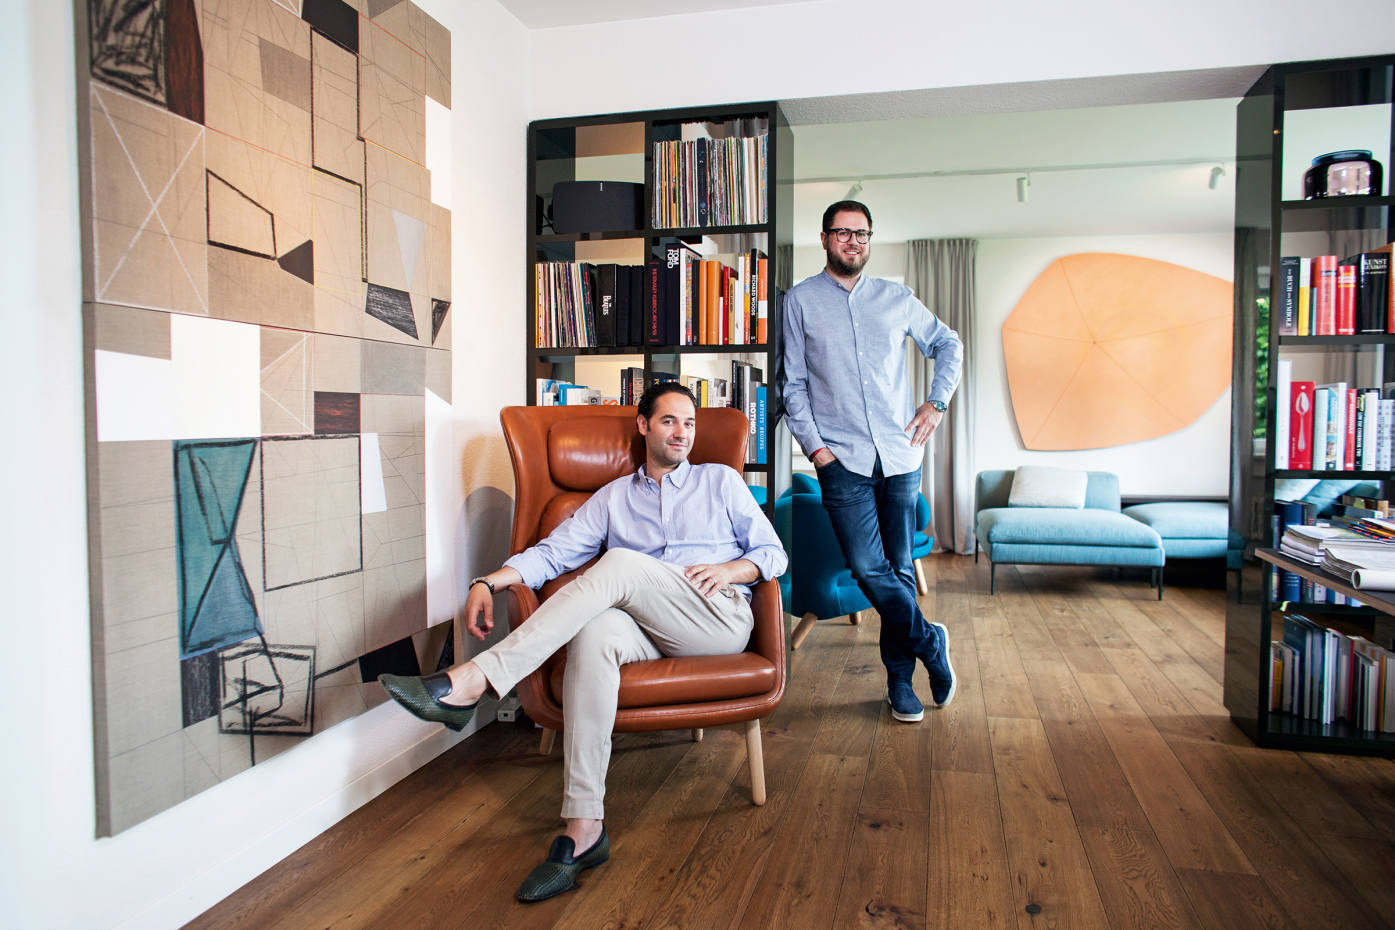 Leopold Weinberg (seated) and Stefan von Bartha at Weinberg's home in Zurich. From front: Variant t-s-(linen)-doubled by Andrew Bick, about £40,000, and Terra 2017 by Imi Knoebel, similar from about £150,000